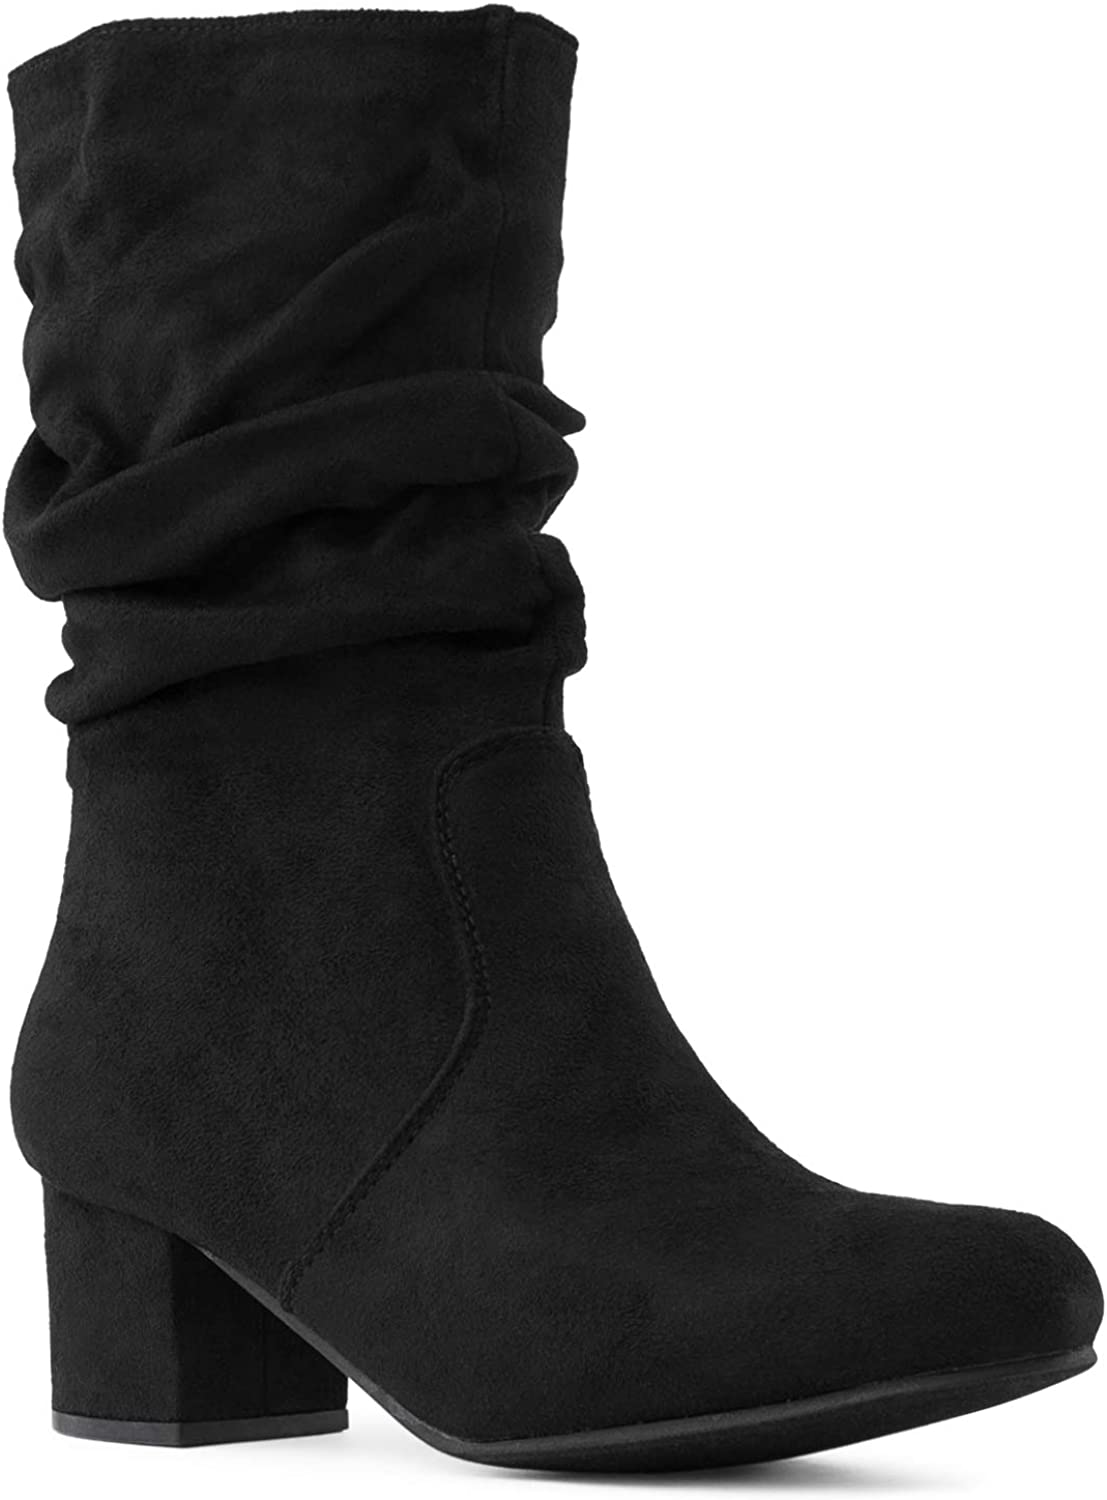 Women's Comfortable Block Heel Slouchy Ankle to Mid Calf Boots